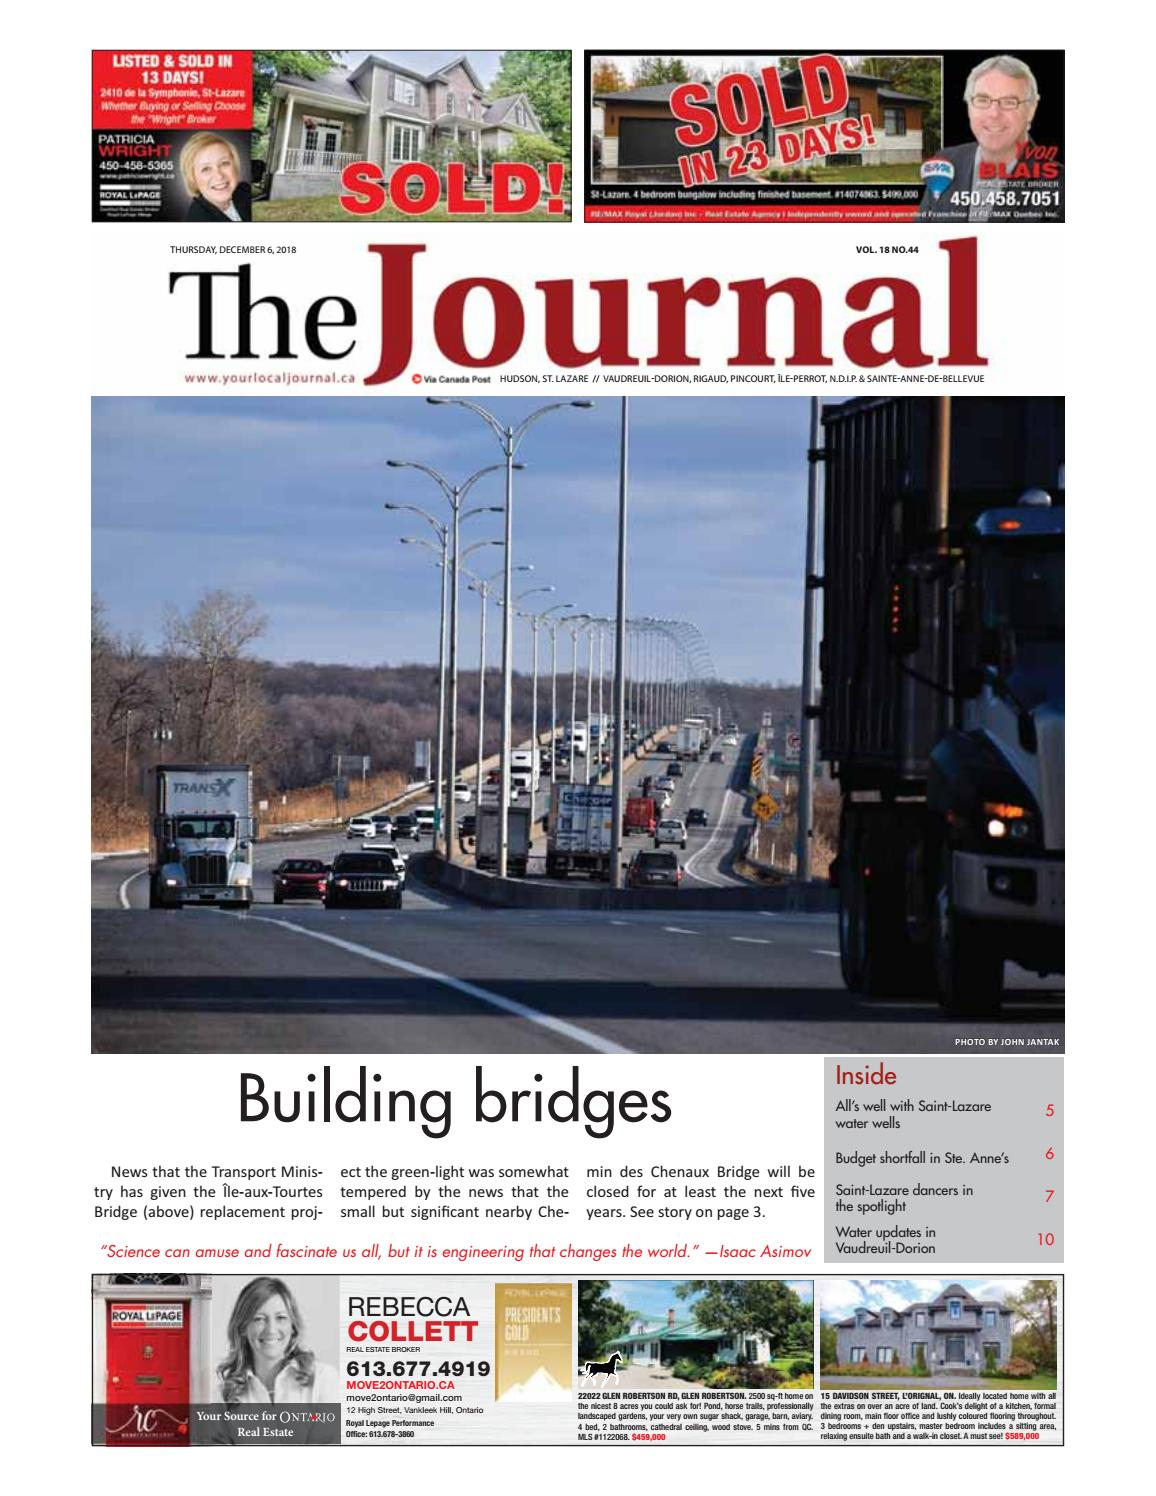 Cabinet Dentaire Saint Lazare The Journal Thursday December 6th 2018 By Your Local Journal